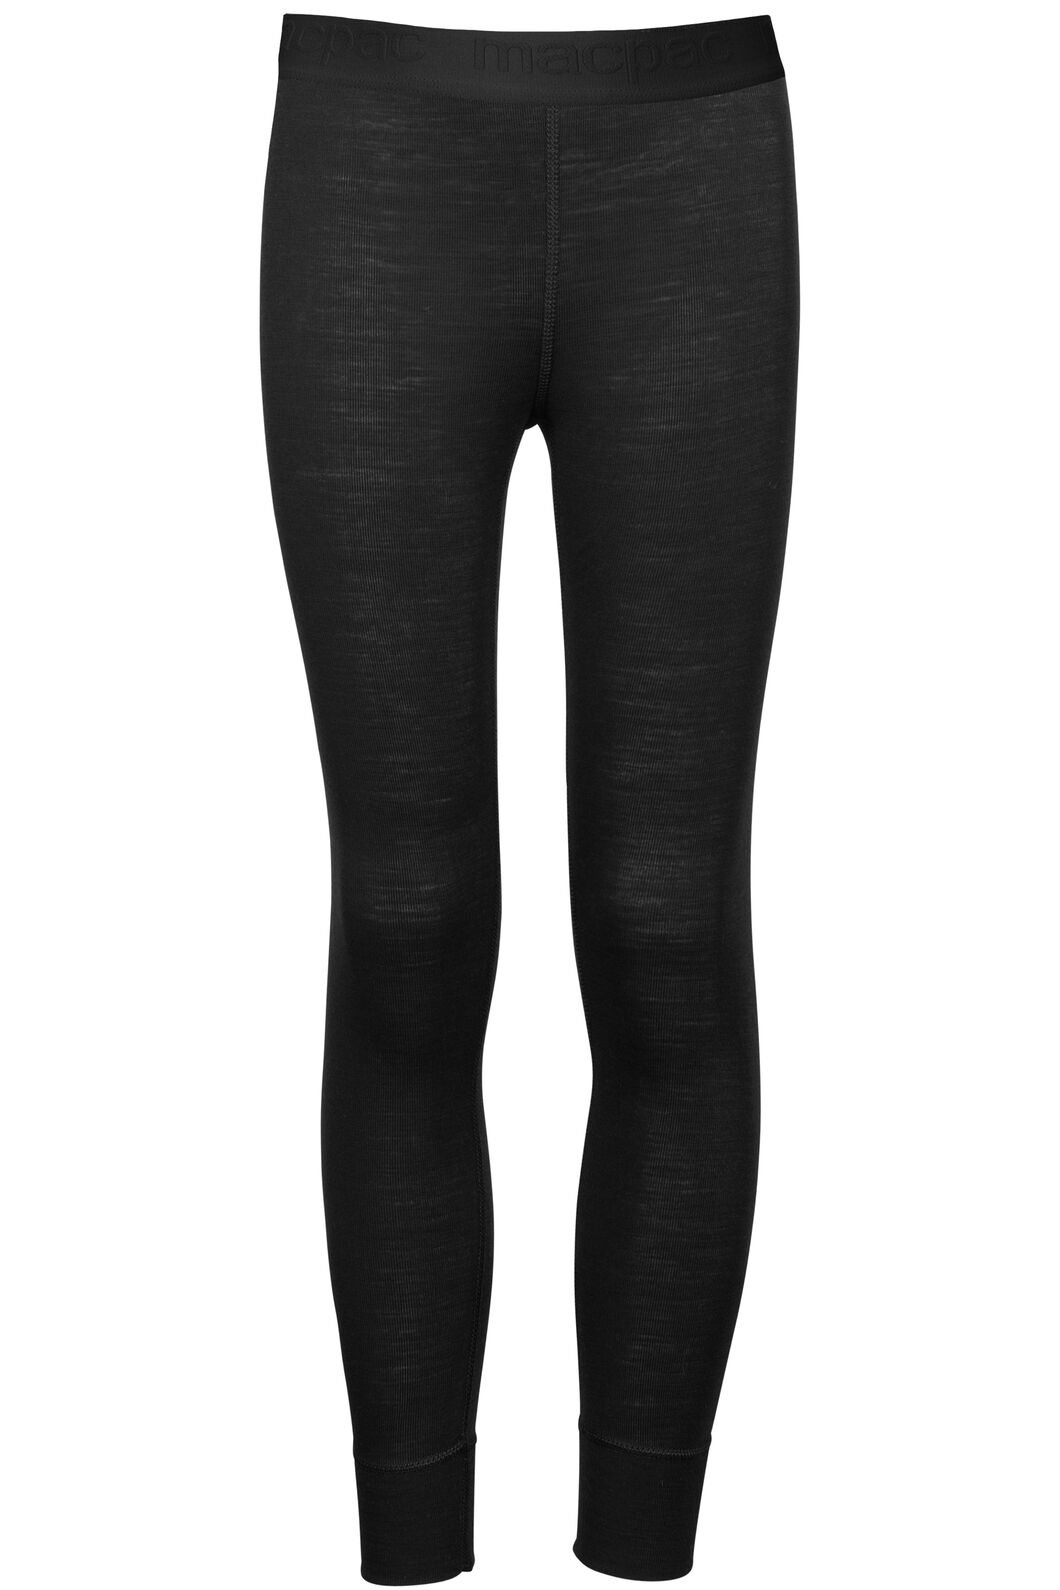 Macpac 220 Merino Long Johns - Kids', Black, hi-res